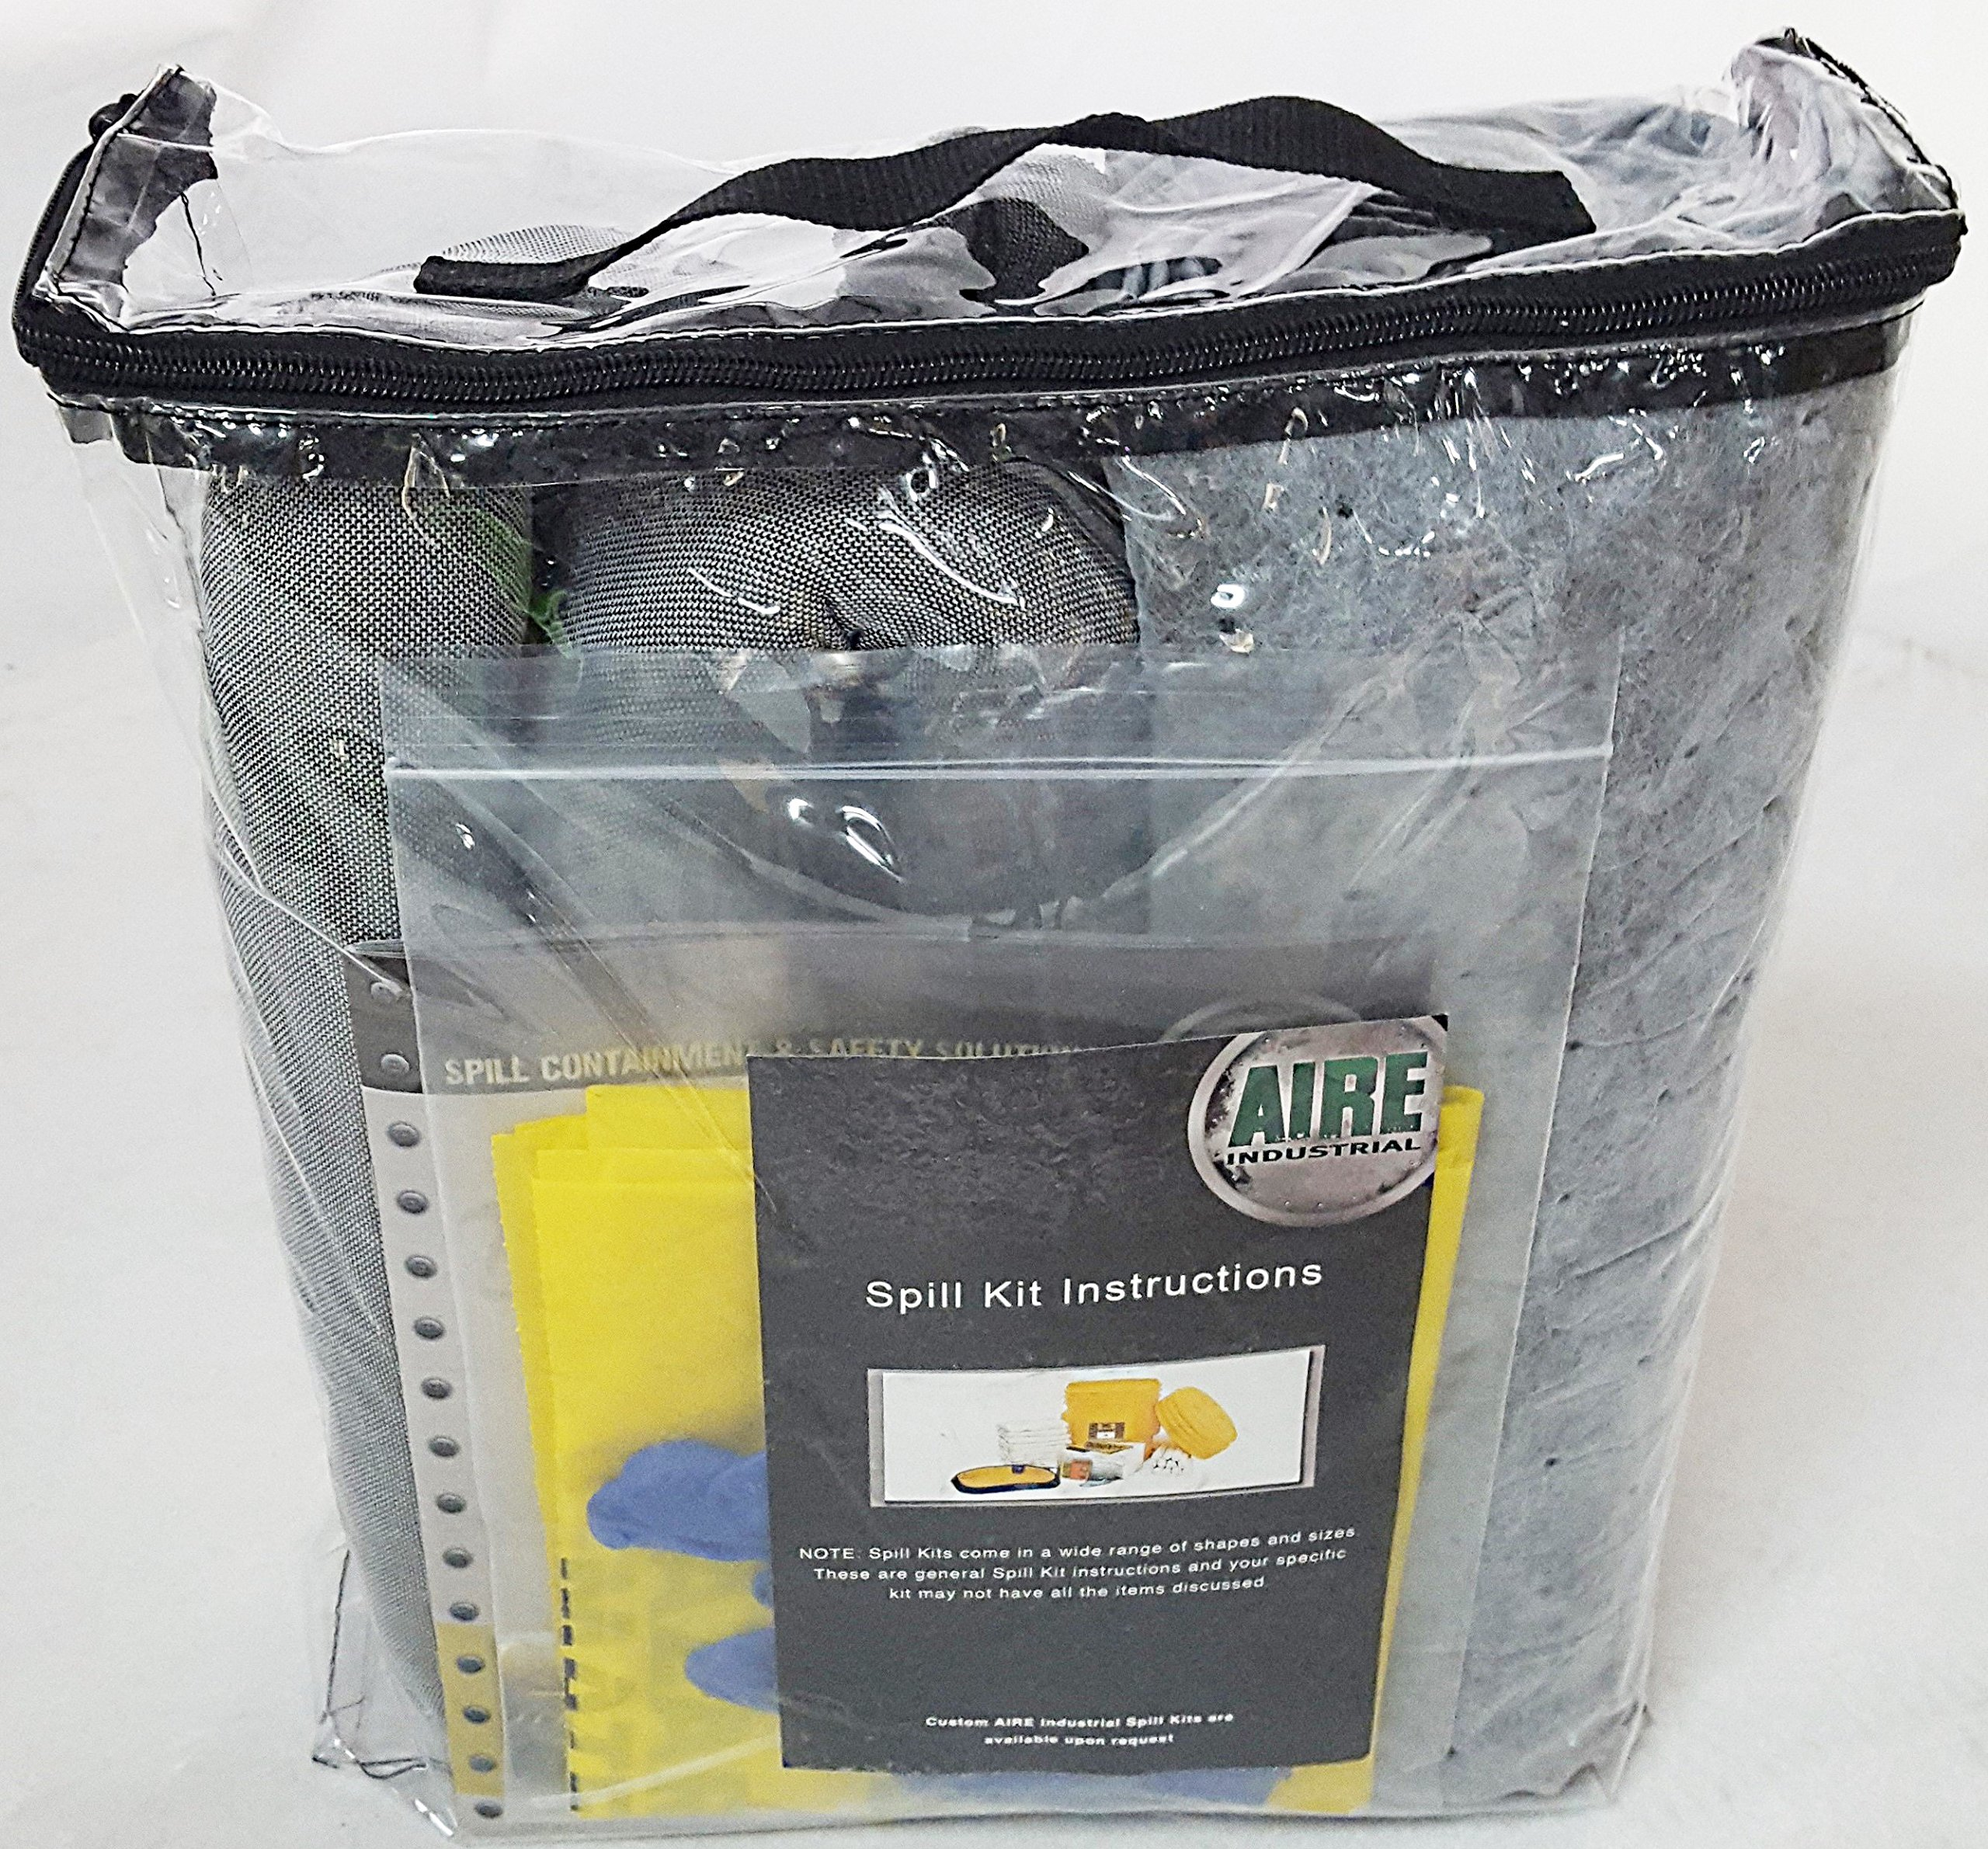 AIRE INDUSTRIAL 942-006456 Spill Kit Universal Economy Portable, 5 gal, Clear PVC